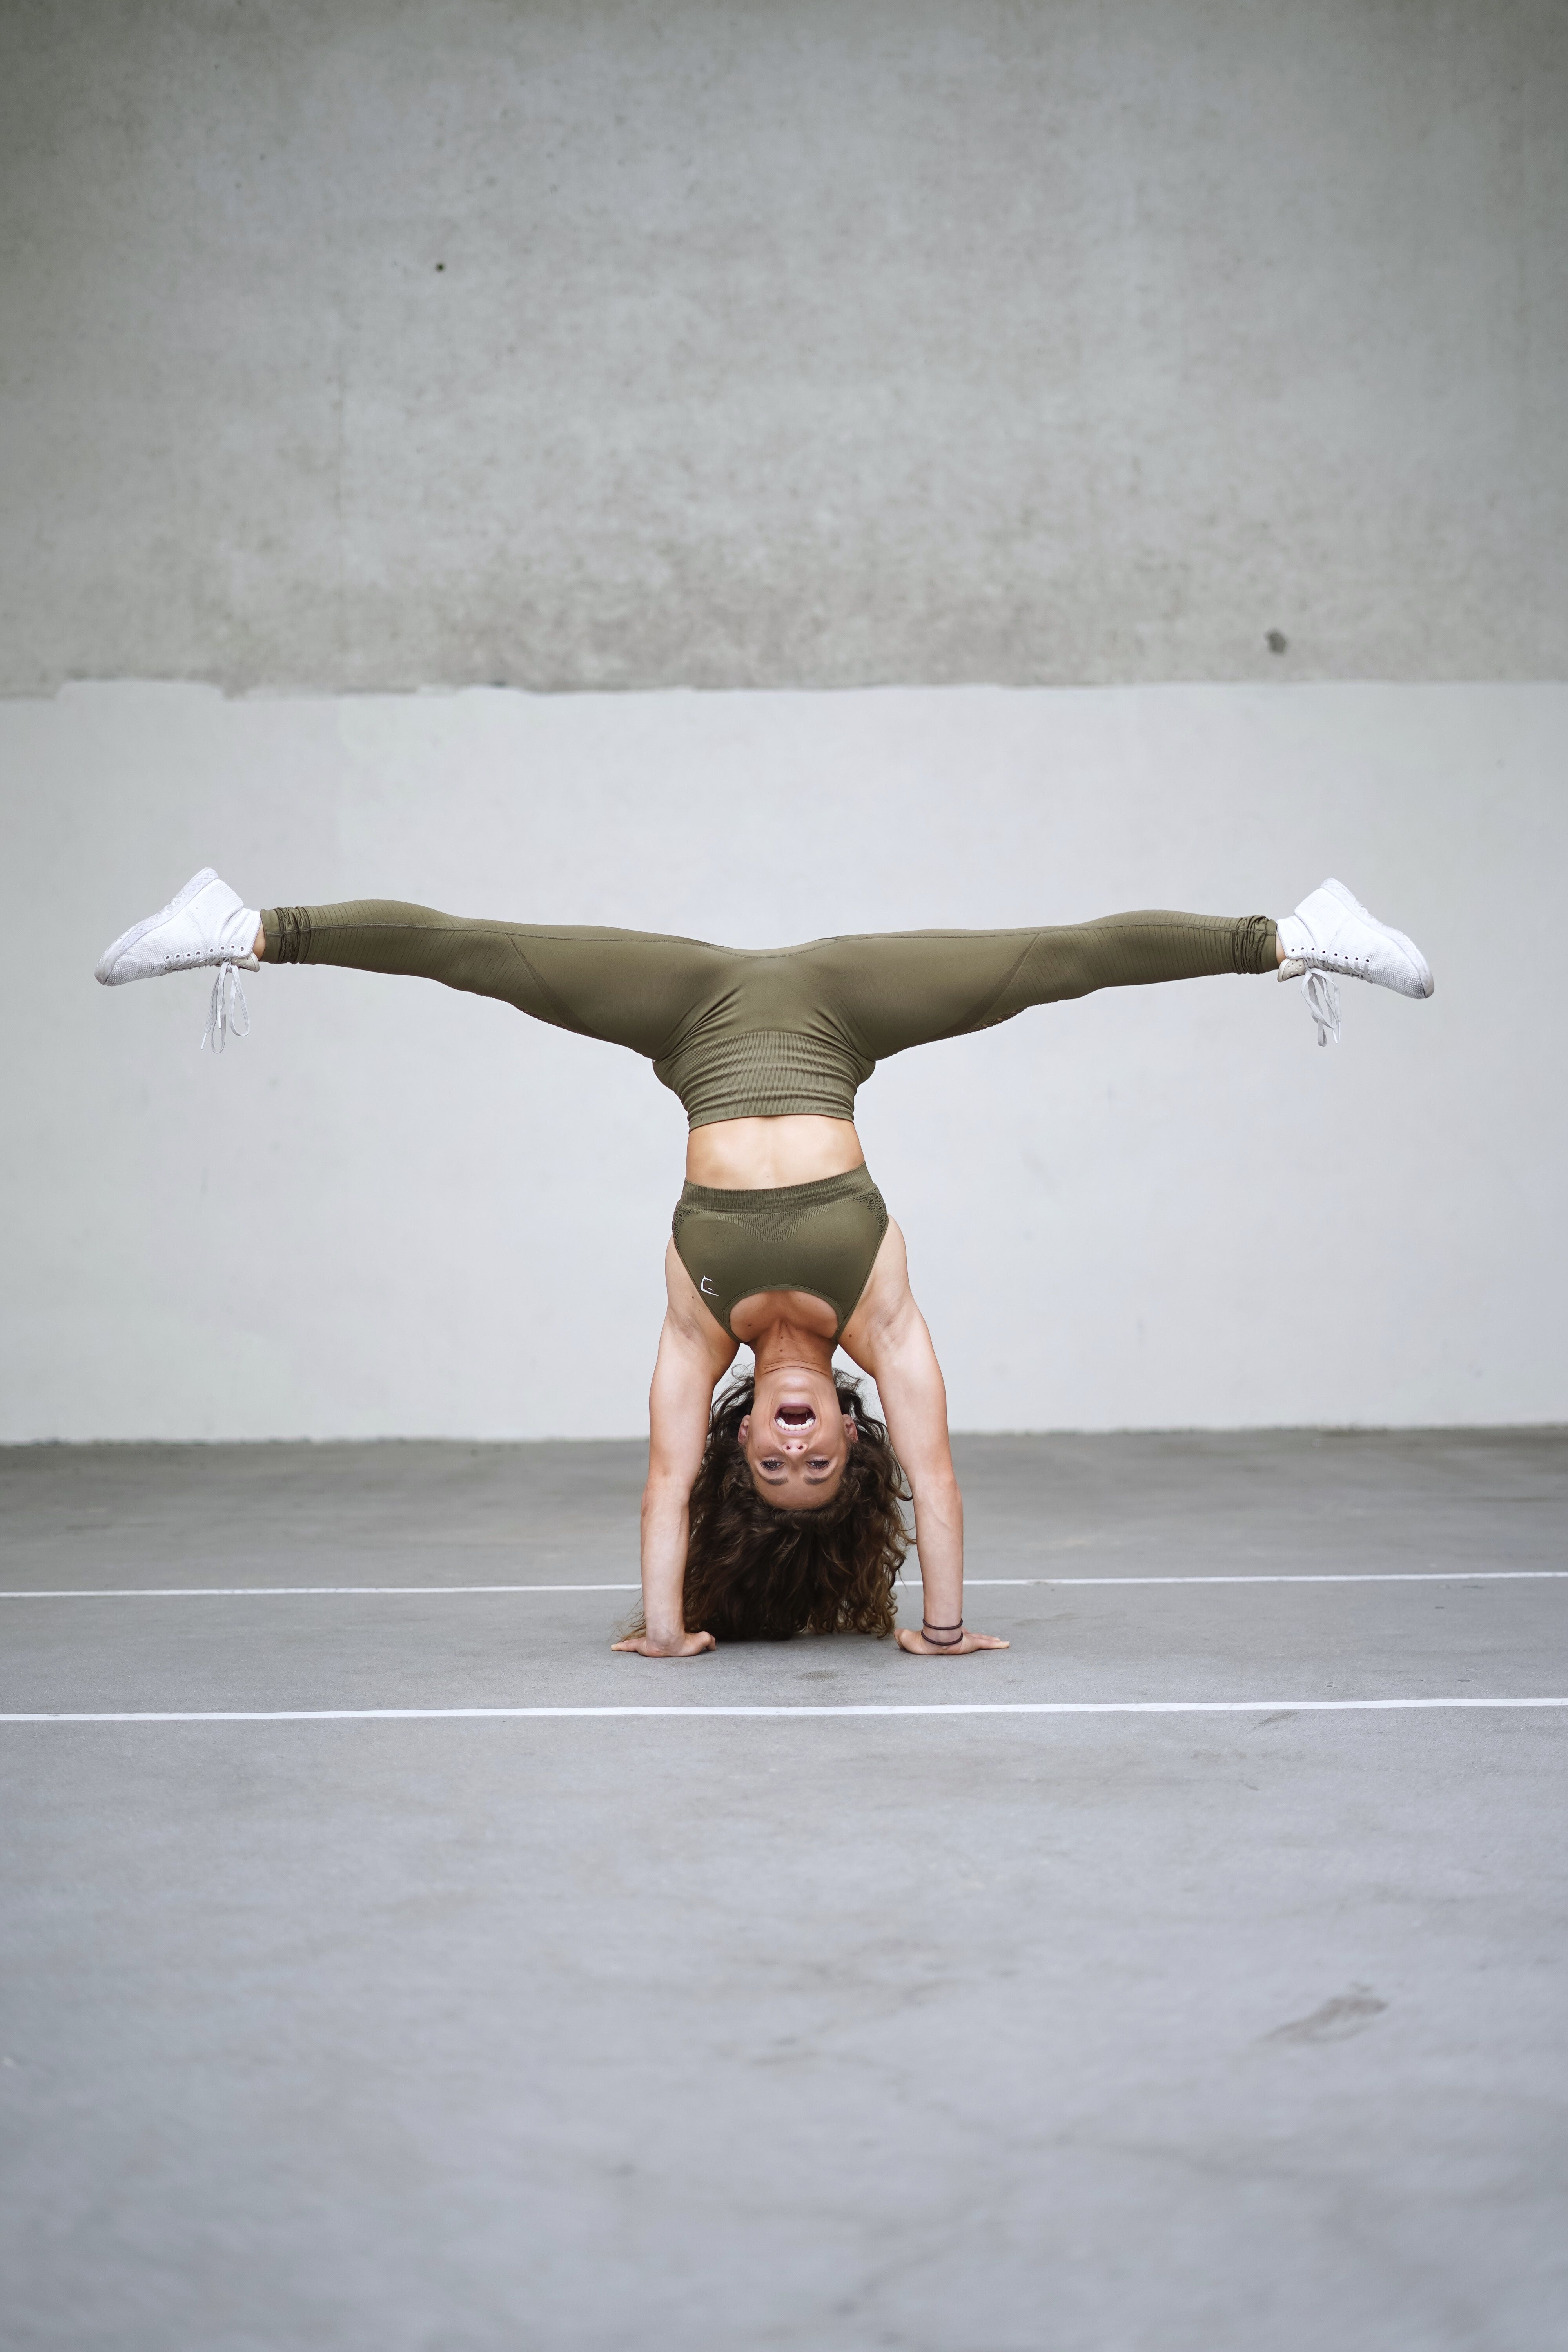 This Self-Taught Teenage Tumbler Is One of Instagram's Most Dynamic Athletes